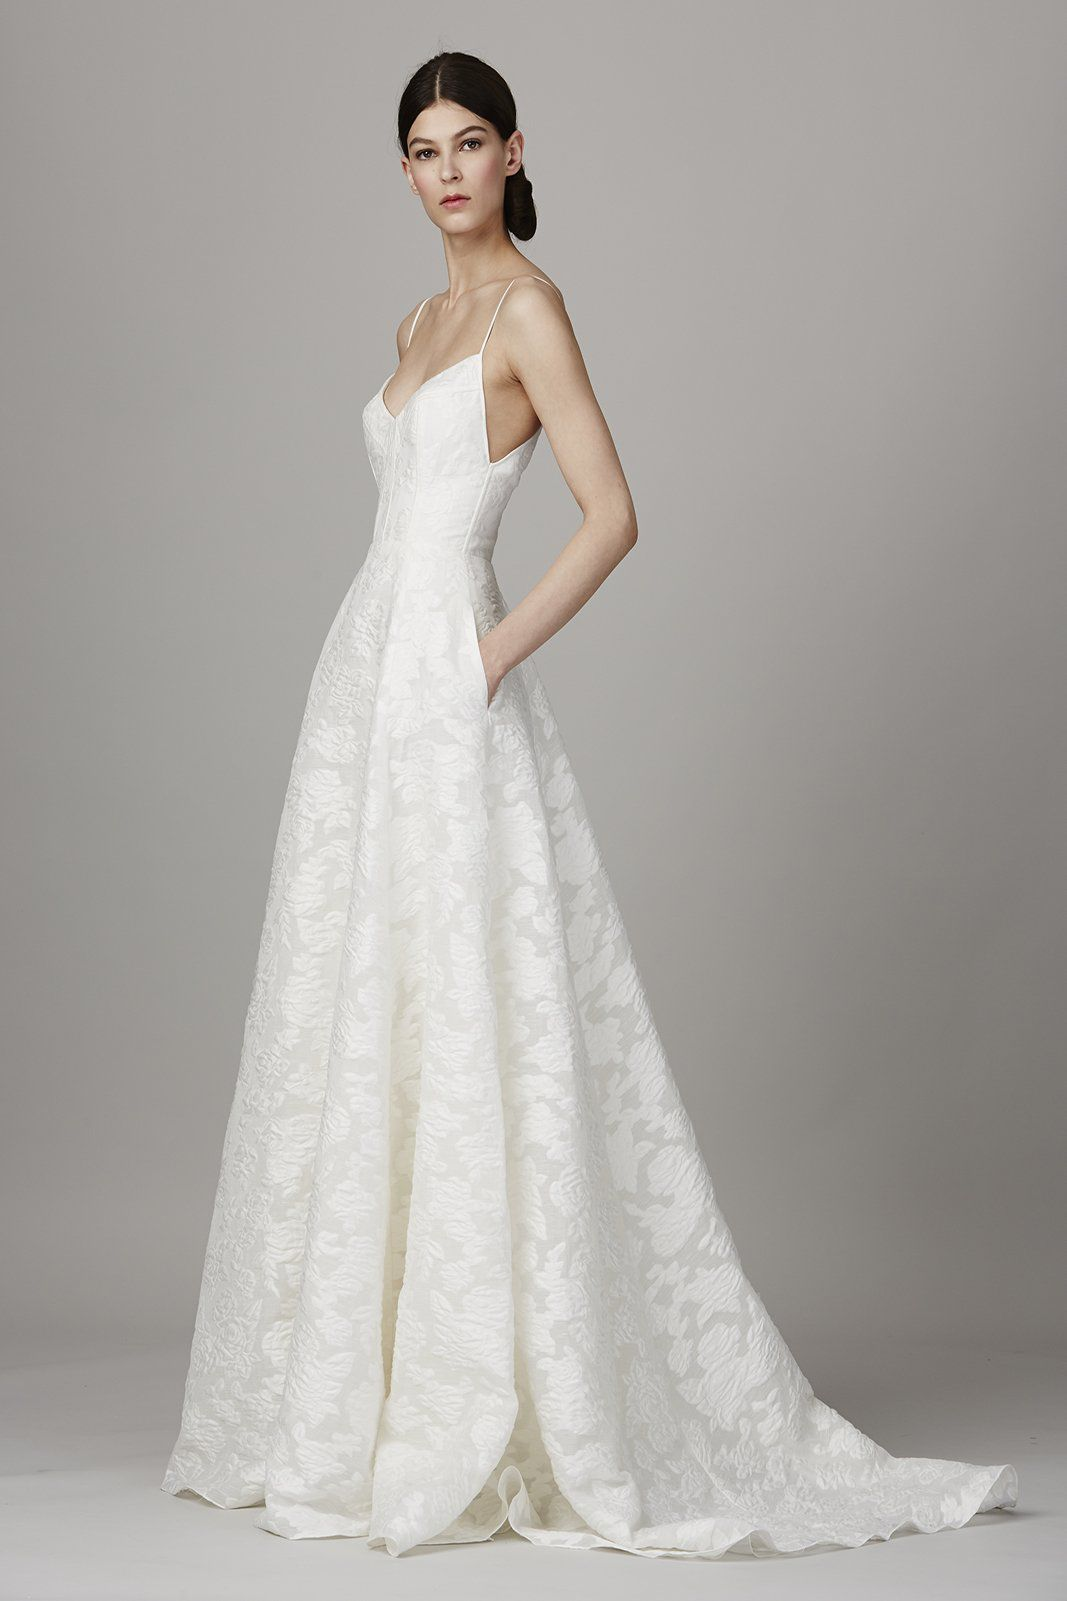 Model in spaghetti strap long white wedding gown with pockets